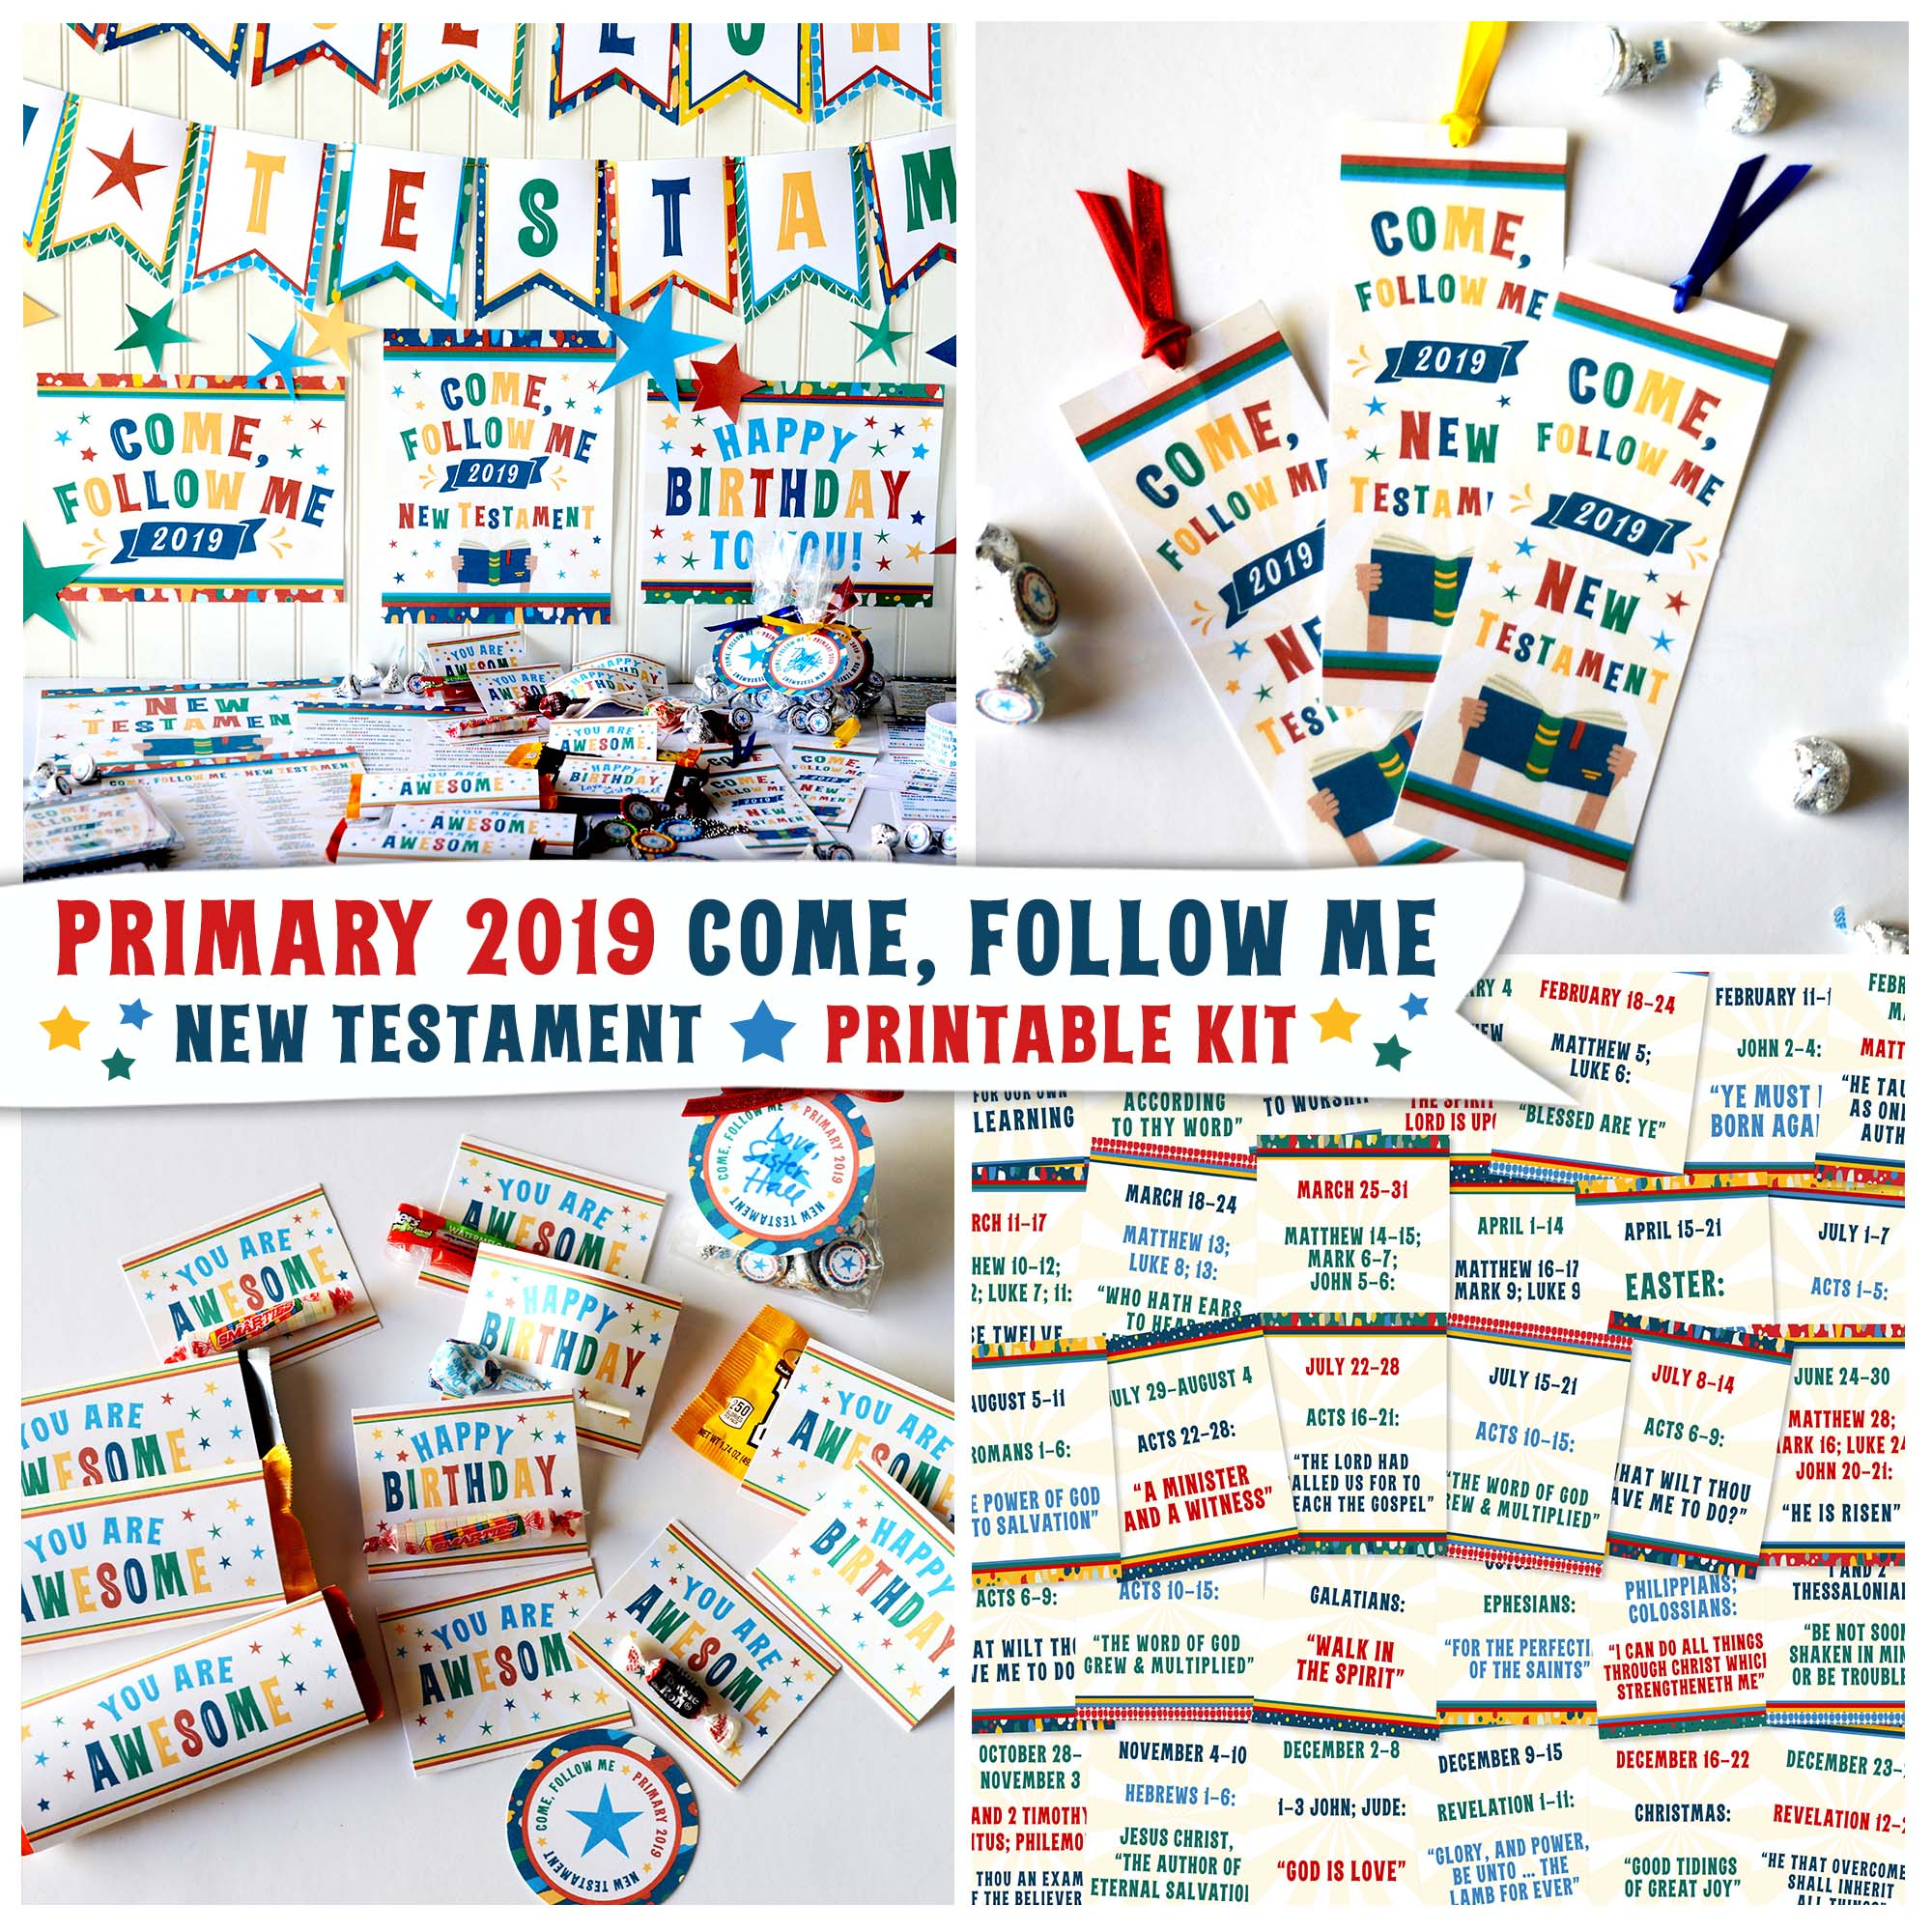 Free 2019 Primary Binders For Come Follow Me New Testament Teepee